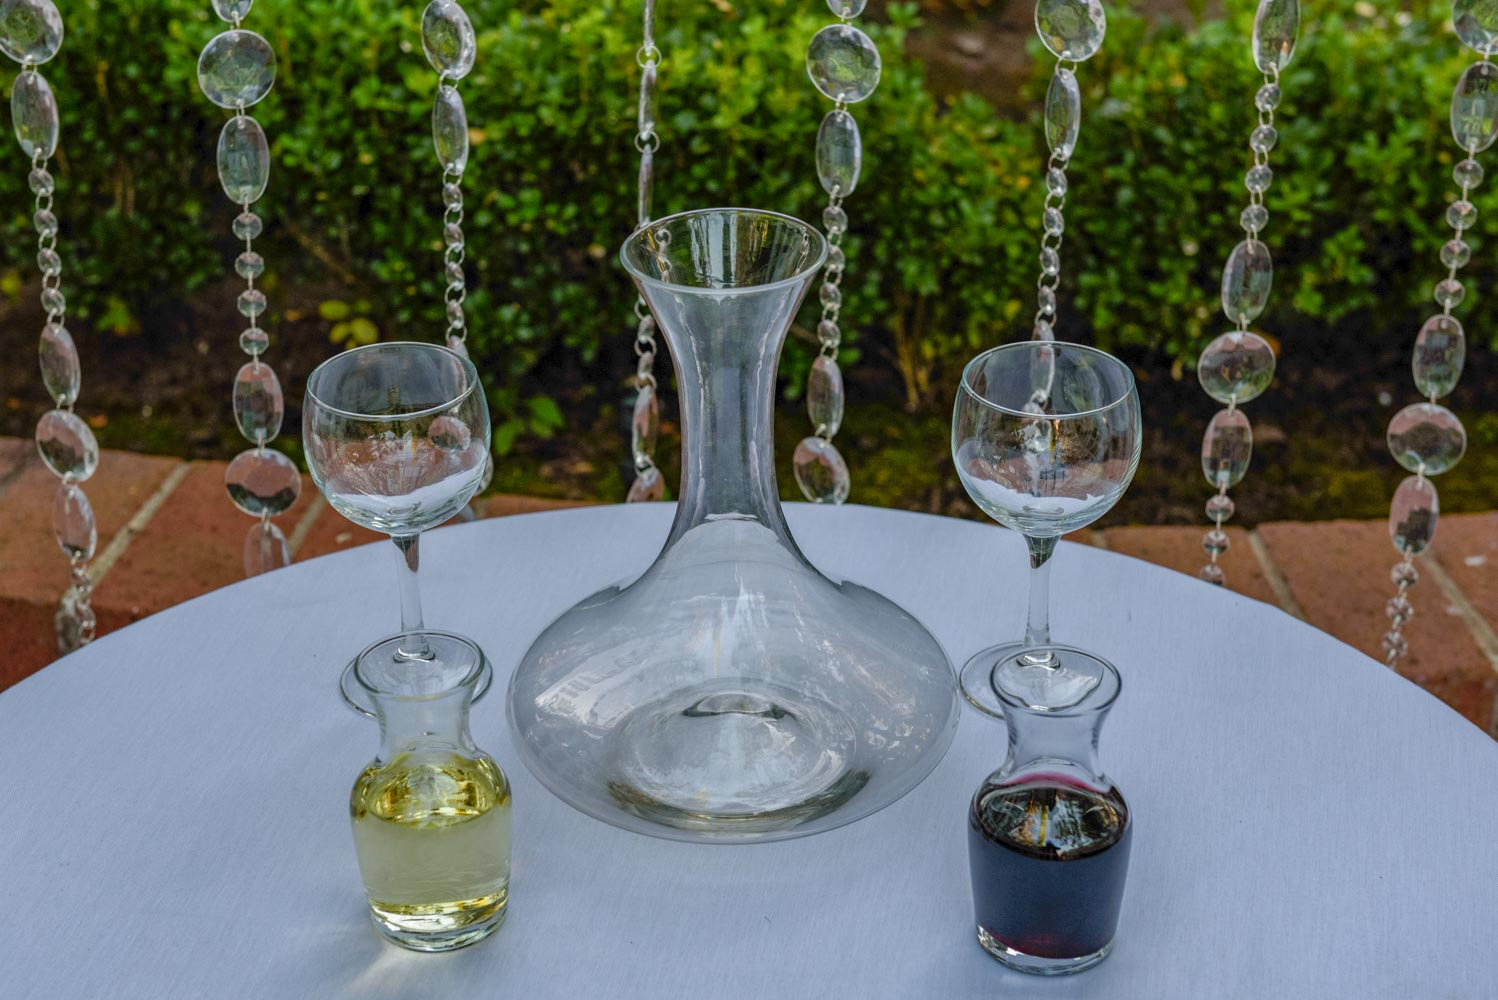 Two empty wine glasses, large empty carafe, and two small carafes with white and red wine, on table with strings of beaded crystals in garden background.